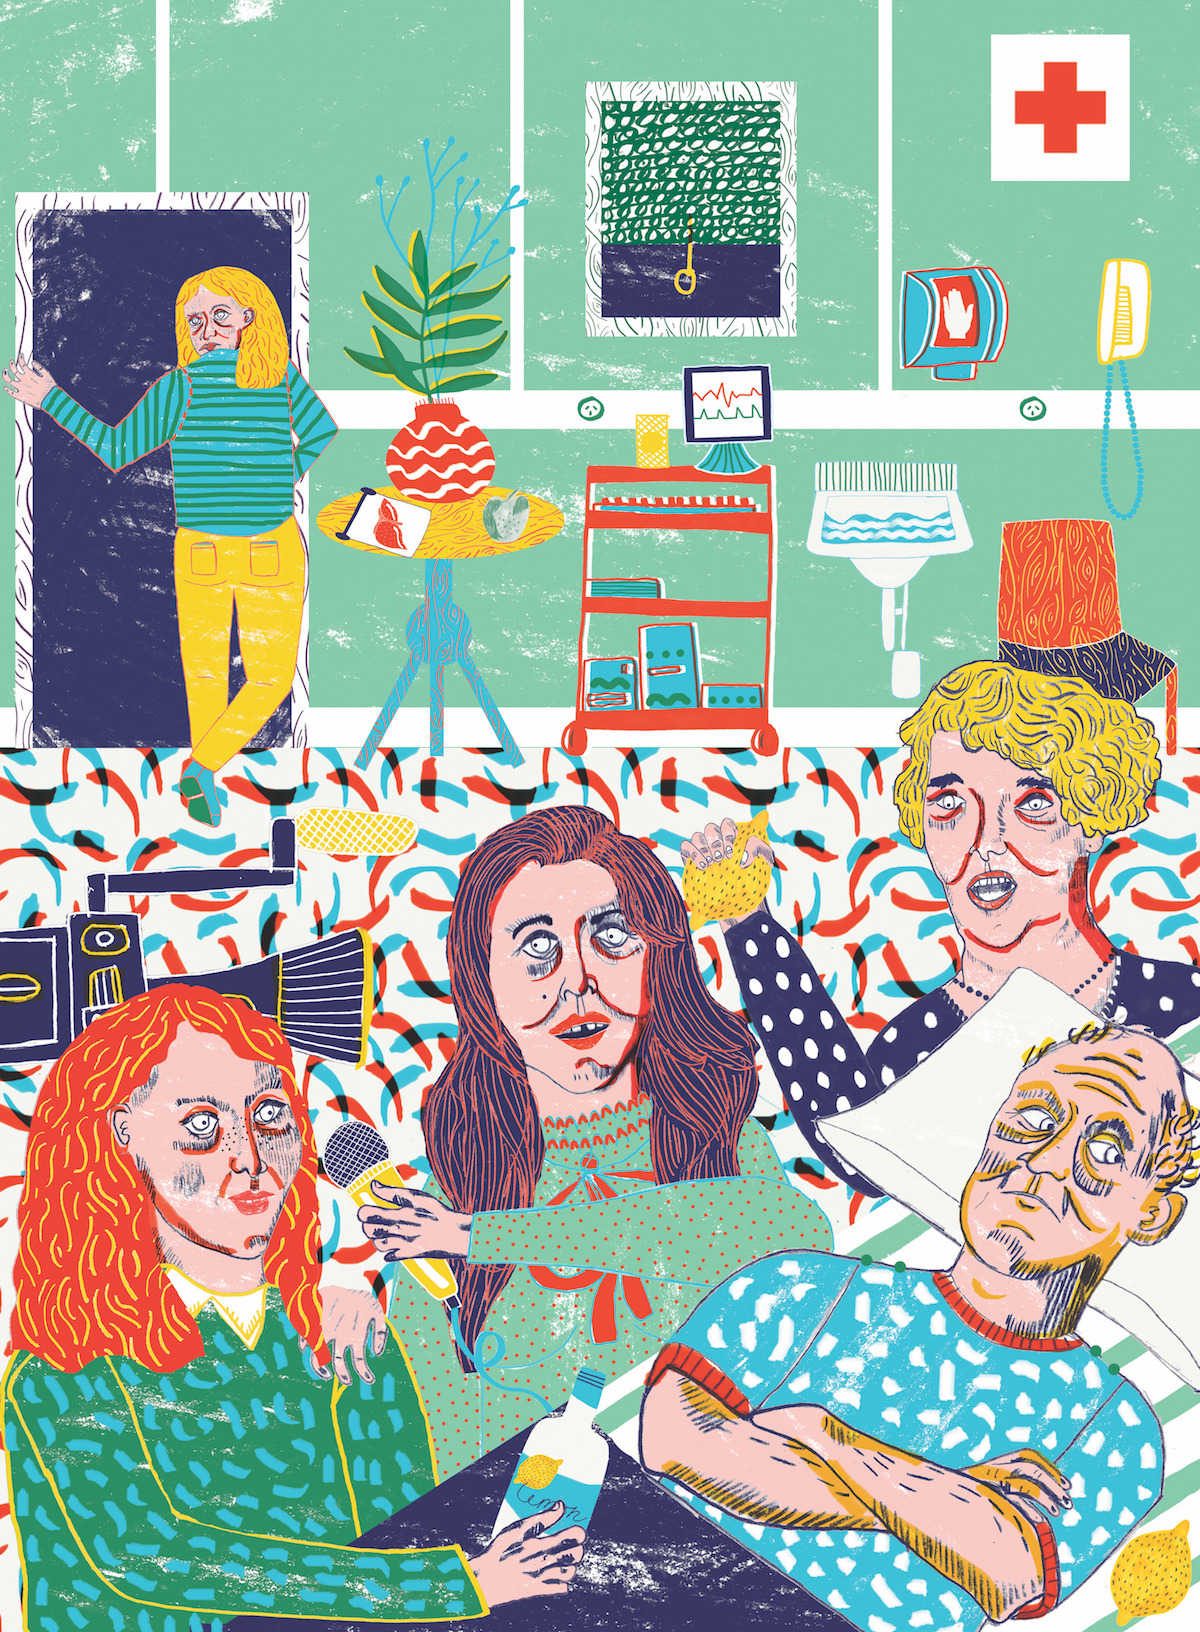 An illustration by  Camilla Perkins  in   The Lifted Brow #24: The Medicine Issue  .